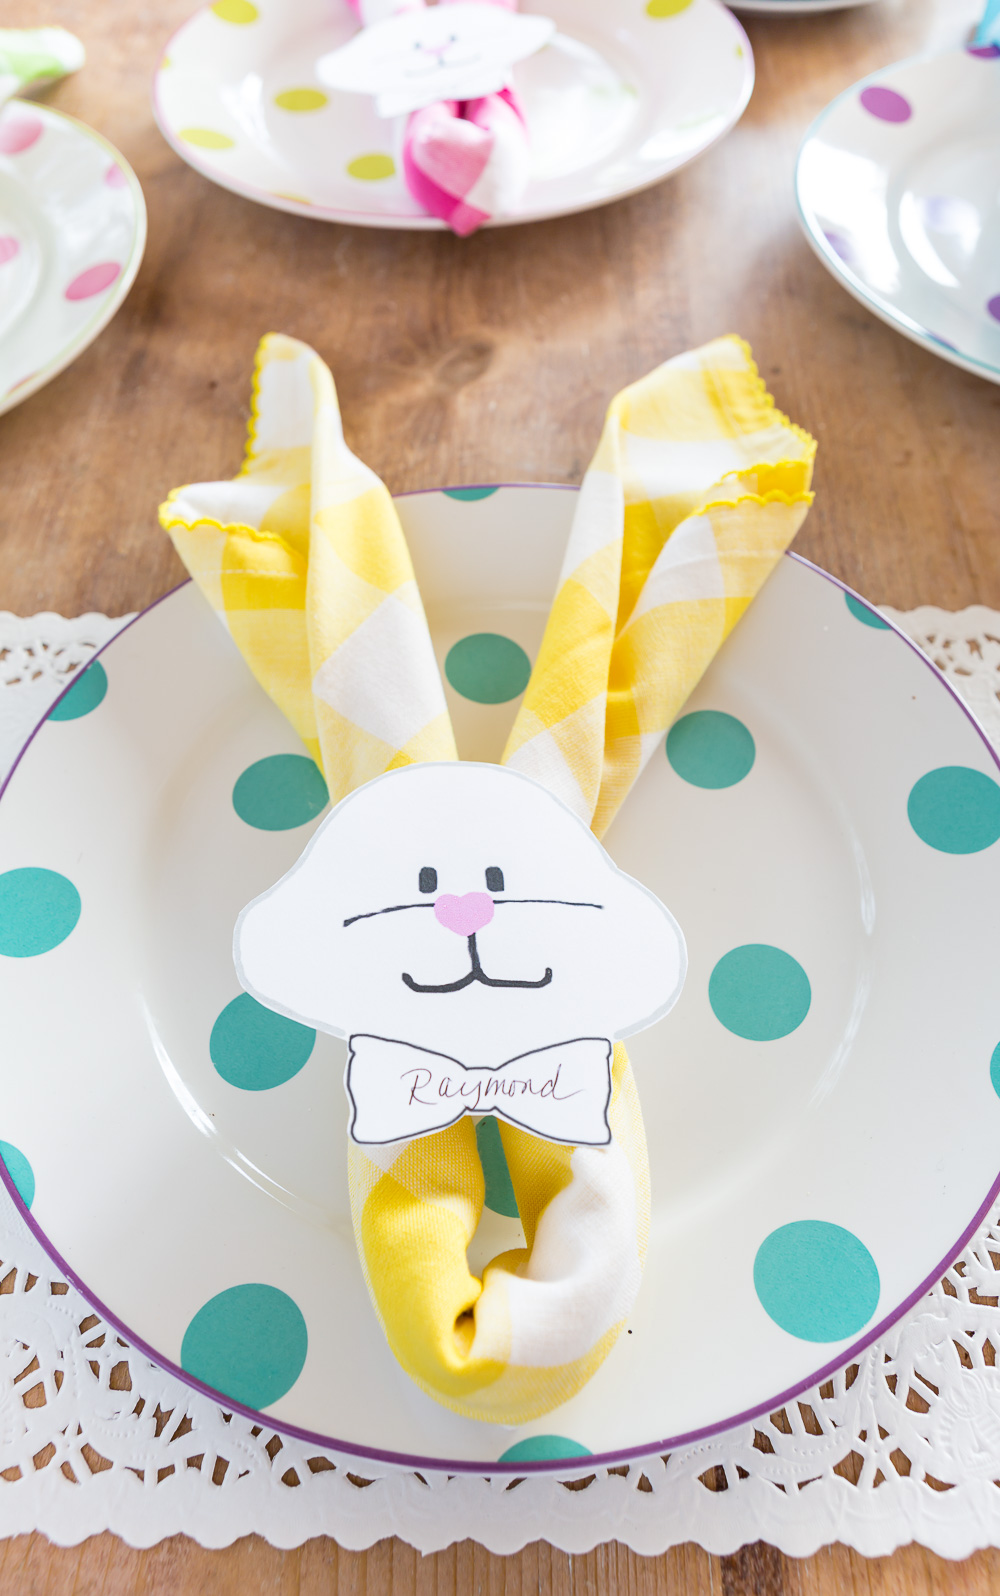 Yellow and white Bunny place card on turquoise polka dot dinner plate.